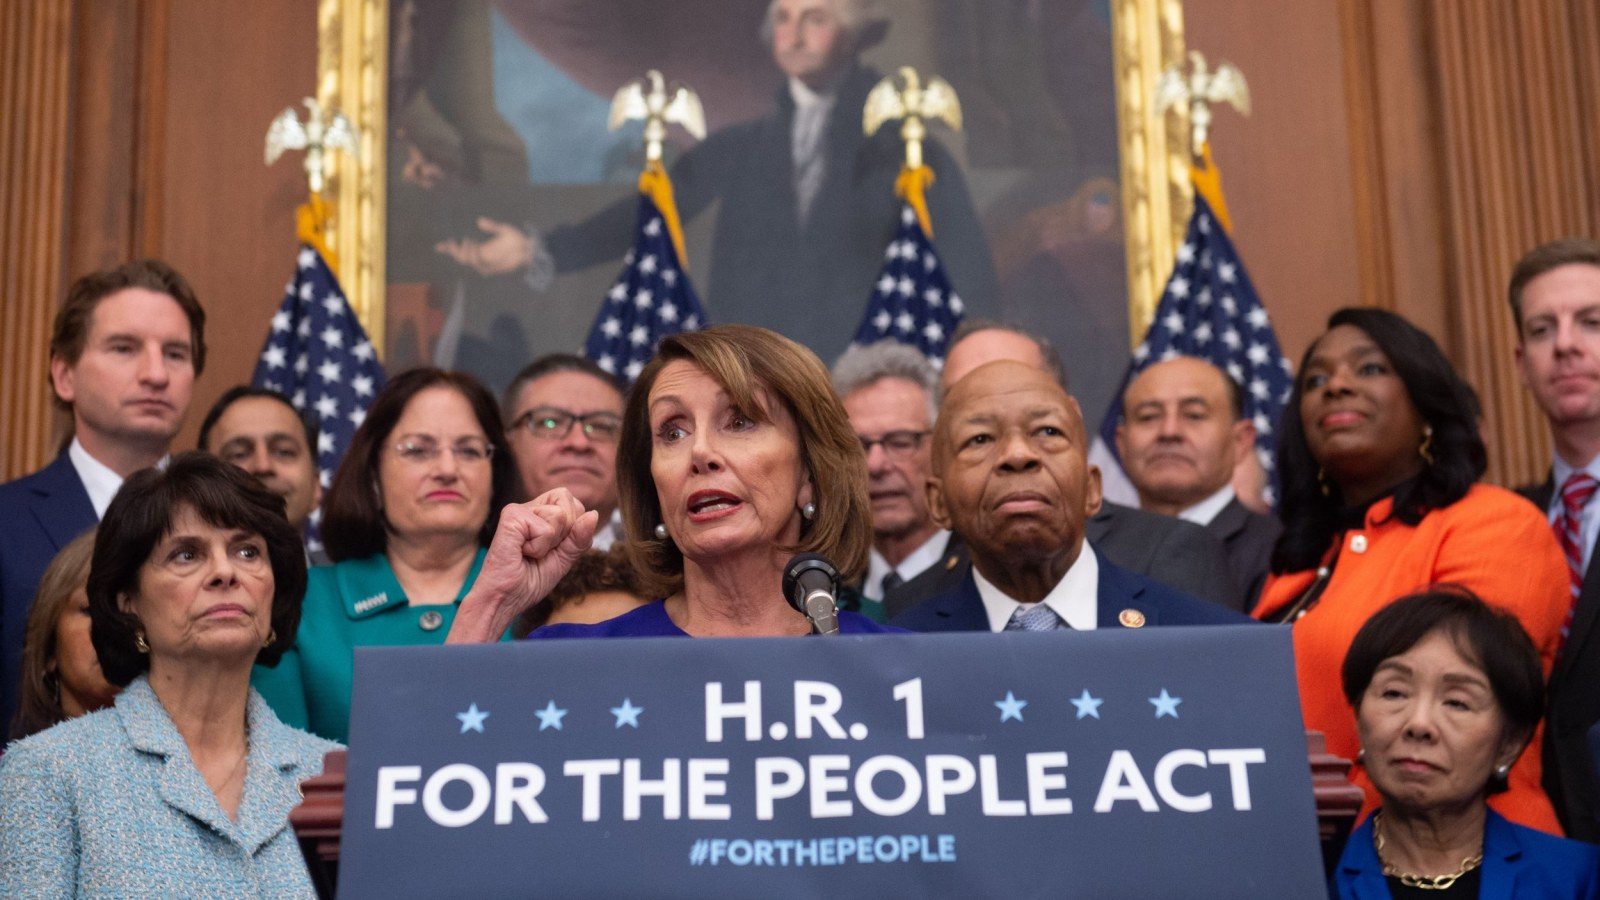 What Is H.R. 1 Bill? House Vote Passes Sweeping Voting Rights, Anti-Corruption Bill, but Senate Republicans Await